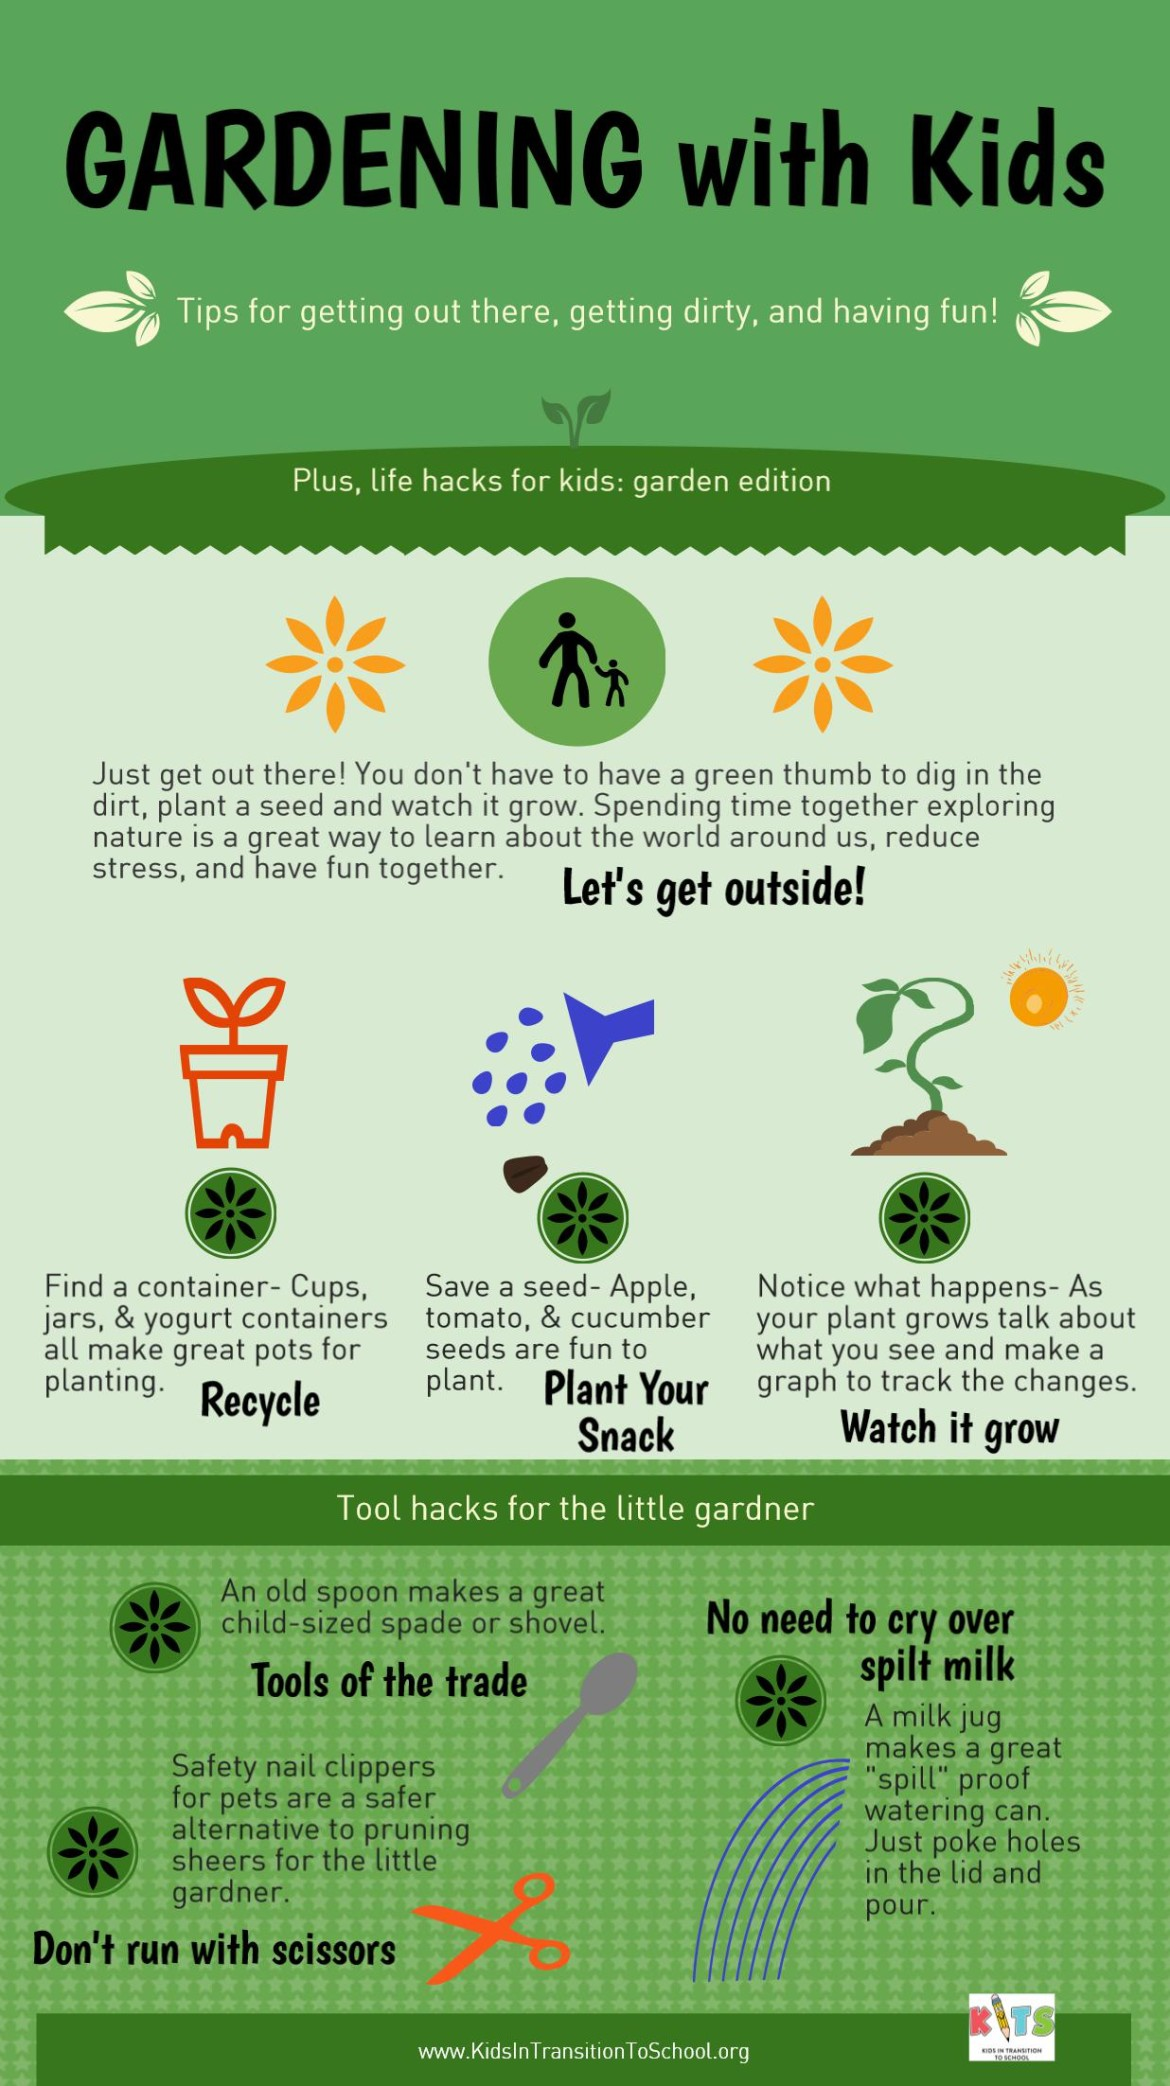 Gardening with kids infographic kits for Gardening tips for kids